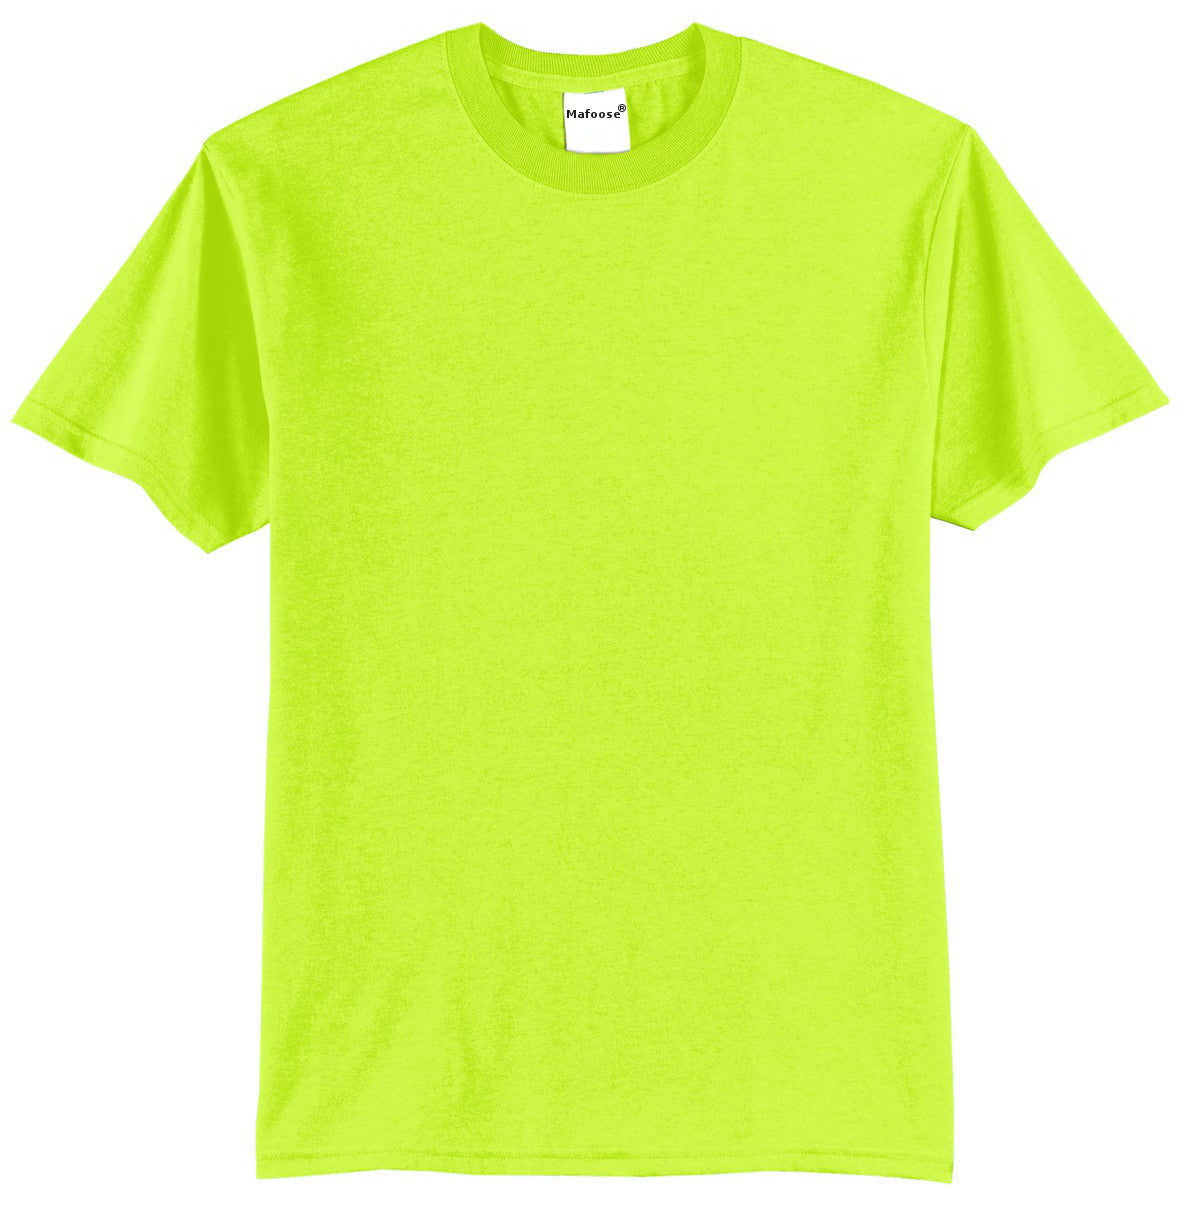 Mafoose Men's Core Blend Tee Shirt Safety Green